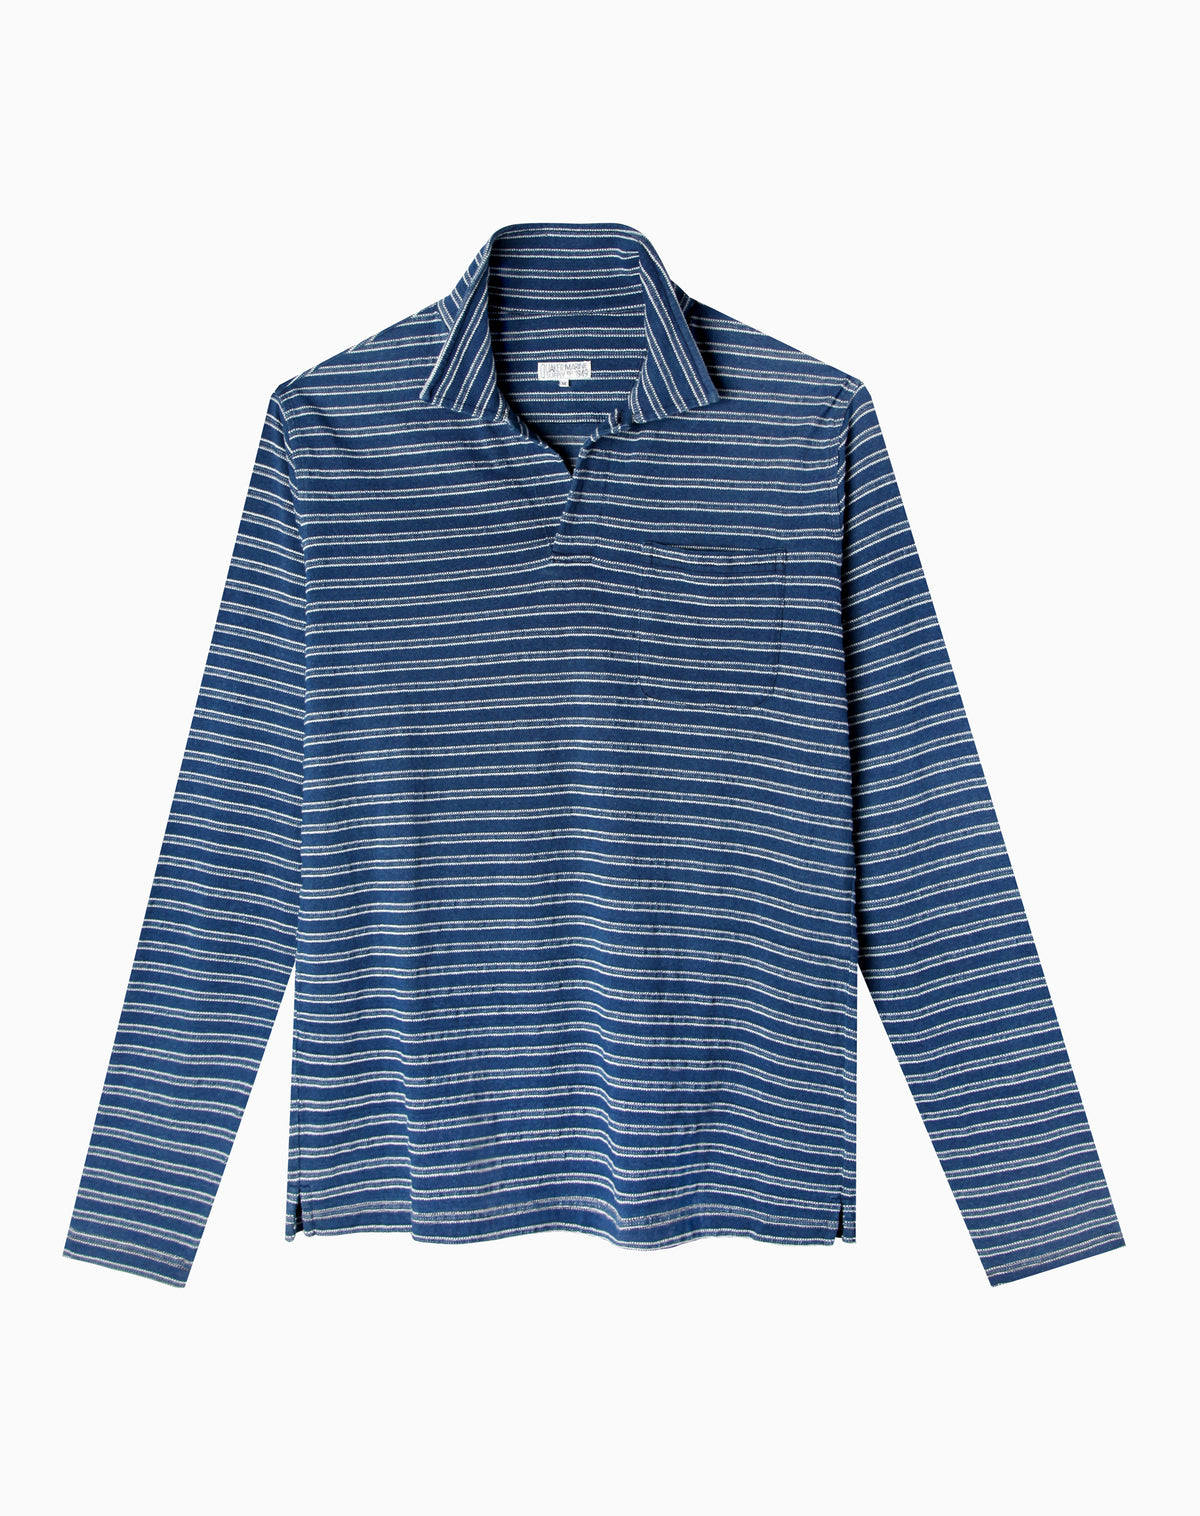 Long Sleeve Indigo Polo in Mid Wash Jacquard Stripe